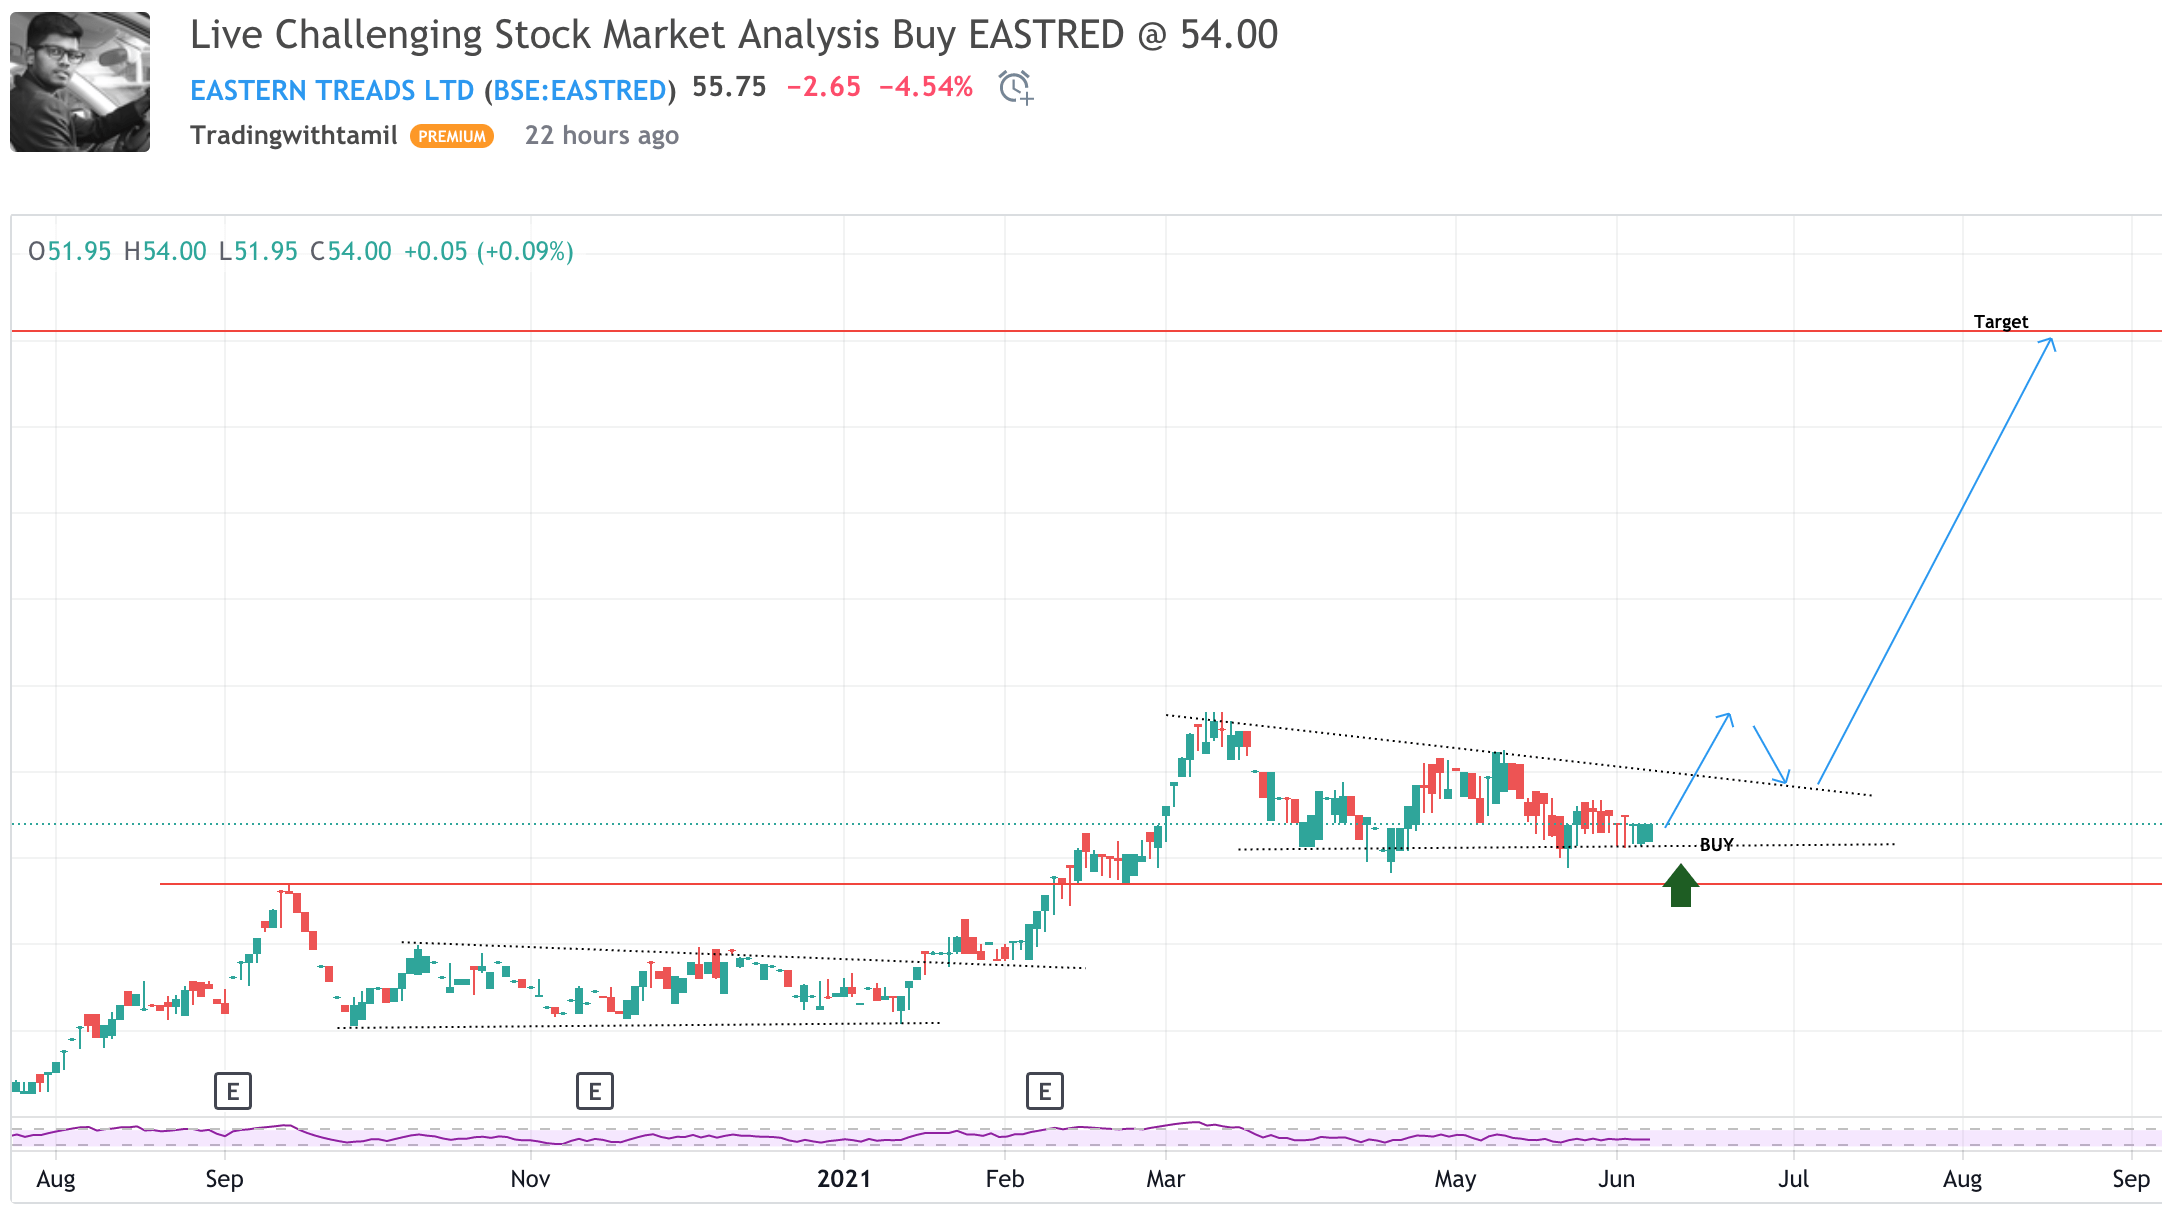 Live Challenging Stock Market Analysis Buy EASTRED @ 54.00